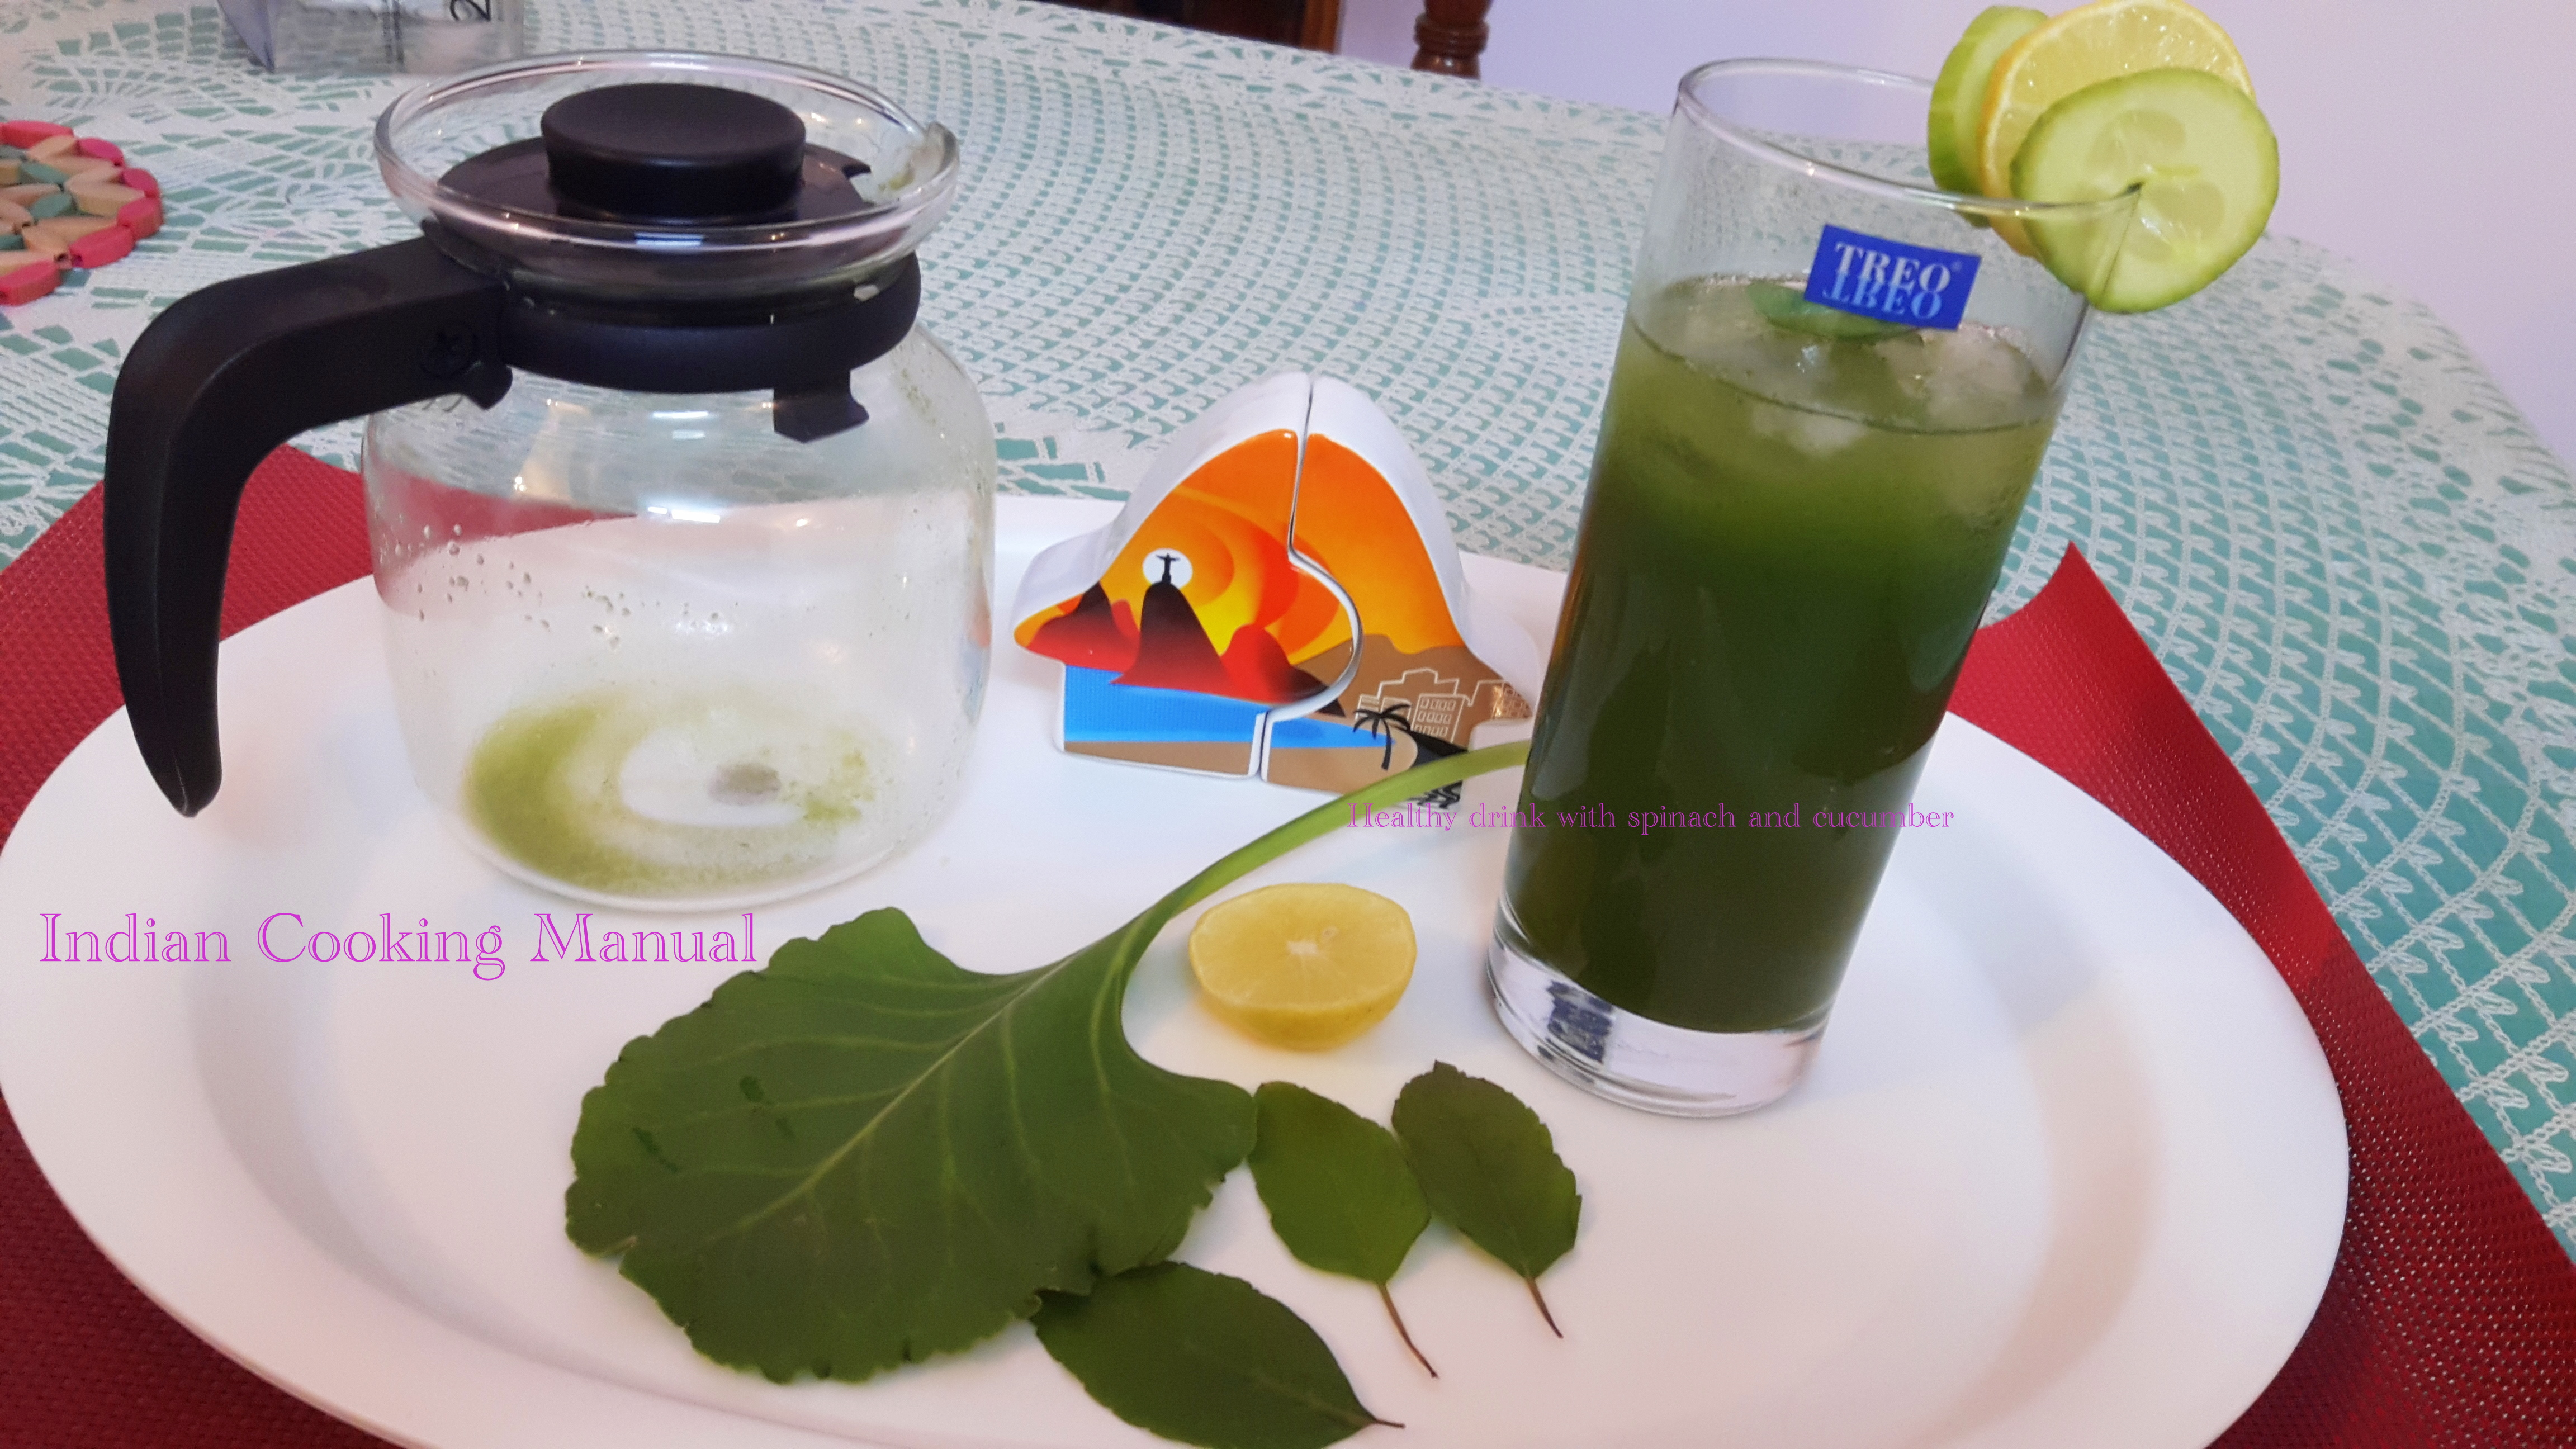 Healthy drink with spinach and cucumber (phalahari recipe)